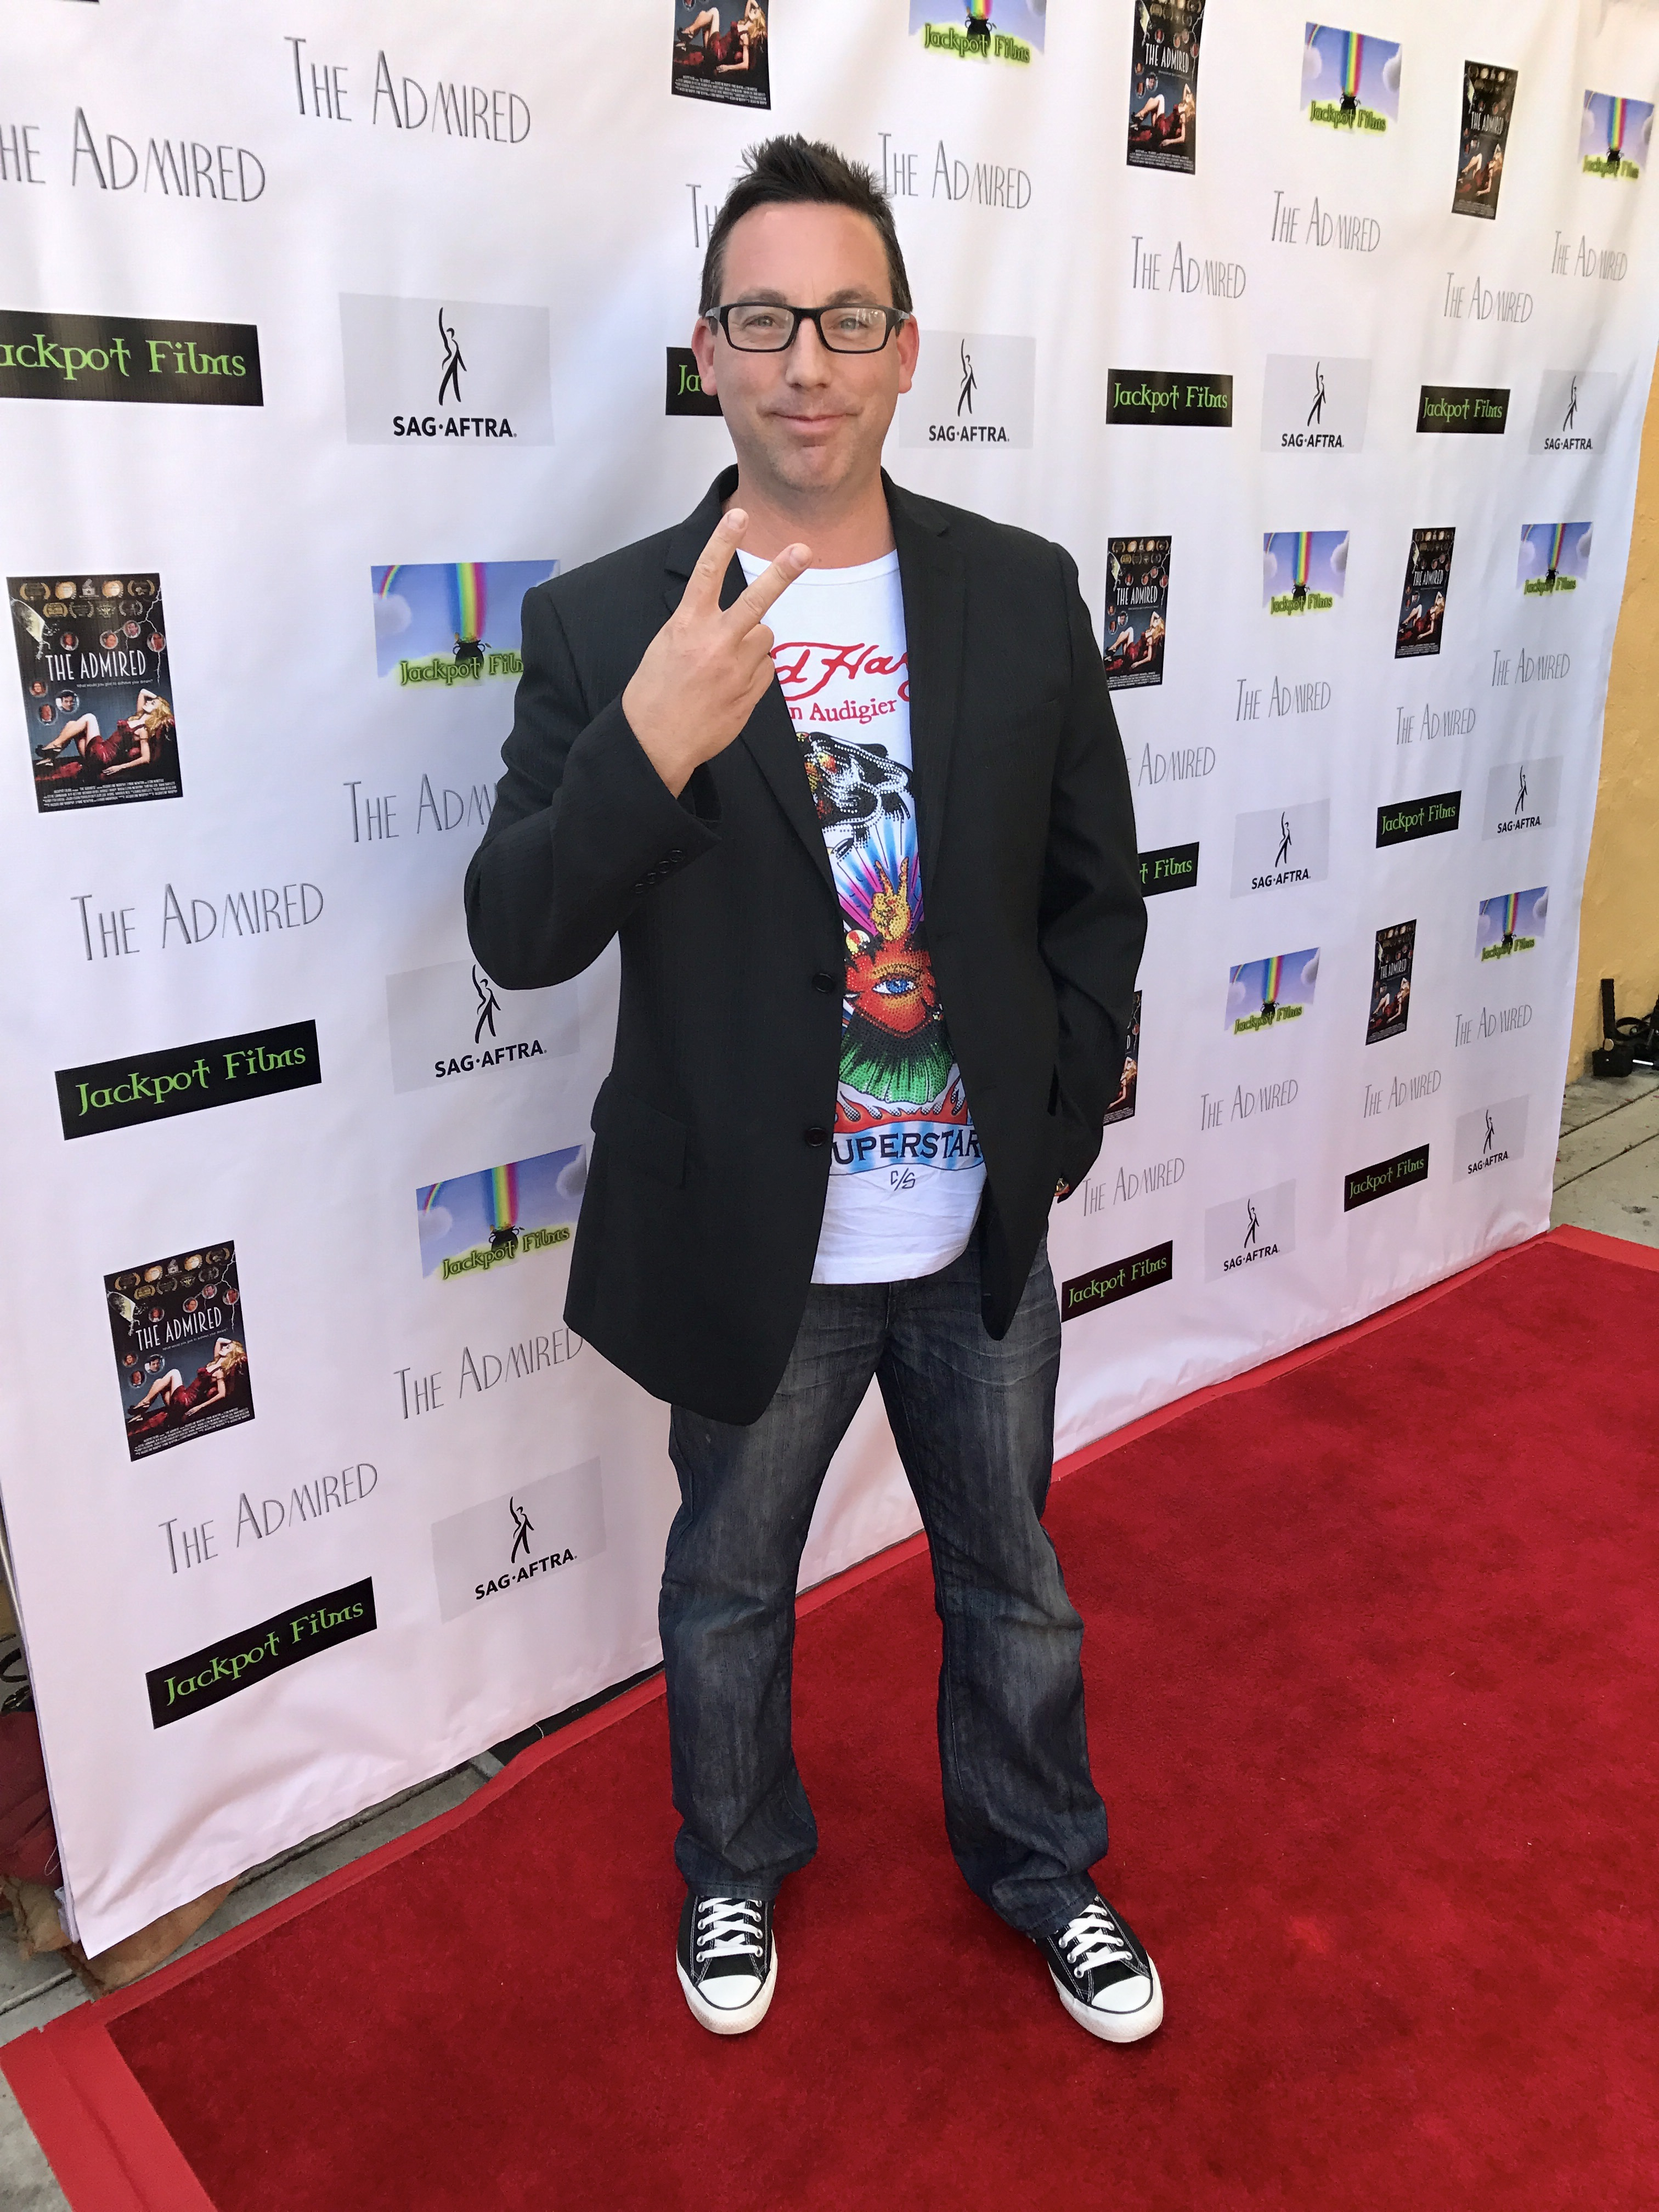 Mike Breyer attends the red carpet screening of The Admired at Raleigh Studios.  Mike plays Rhett Dabler.  04-22-2017